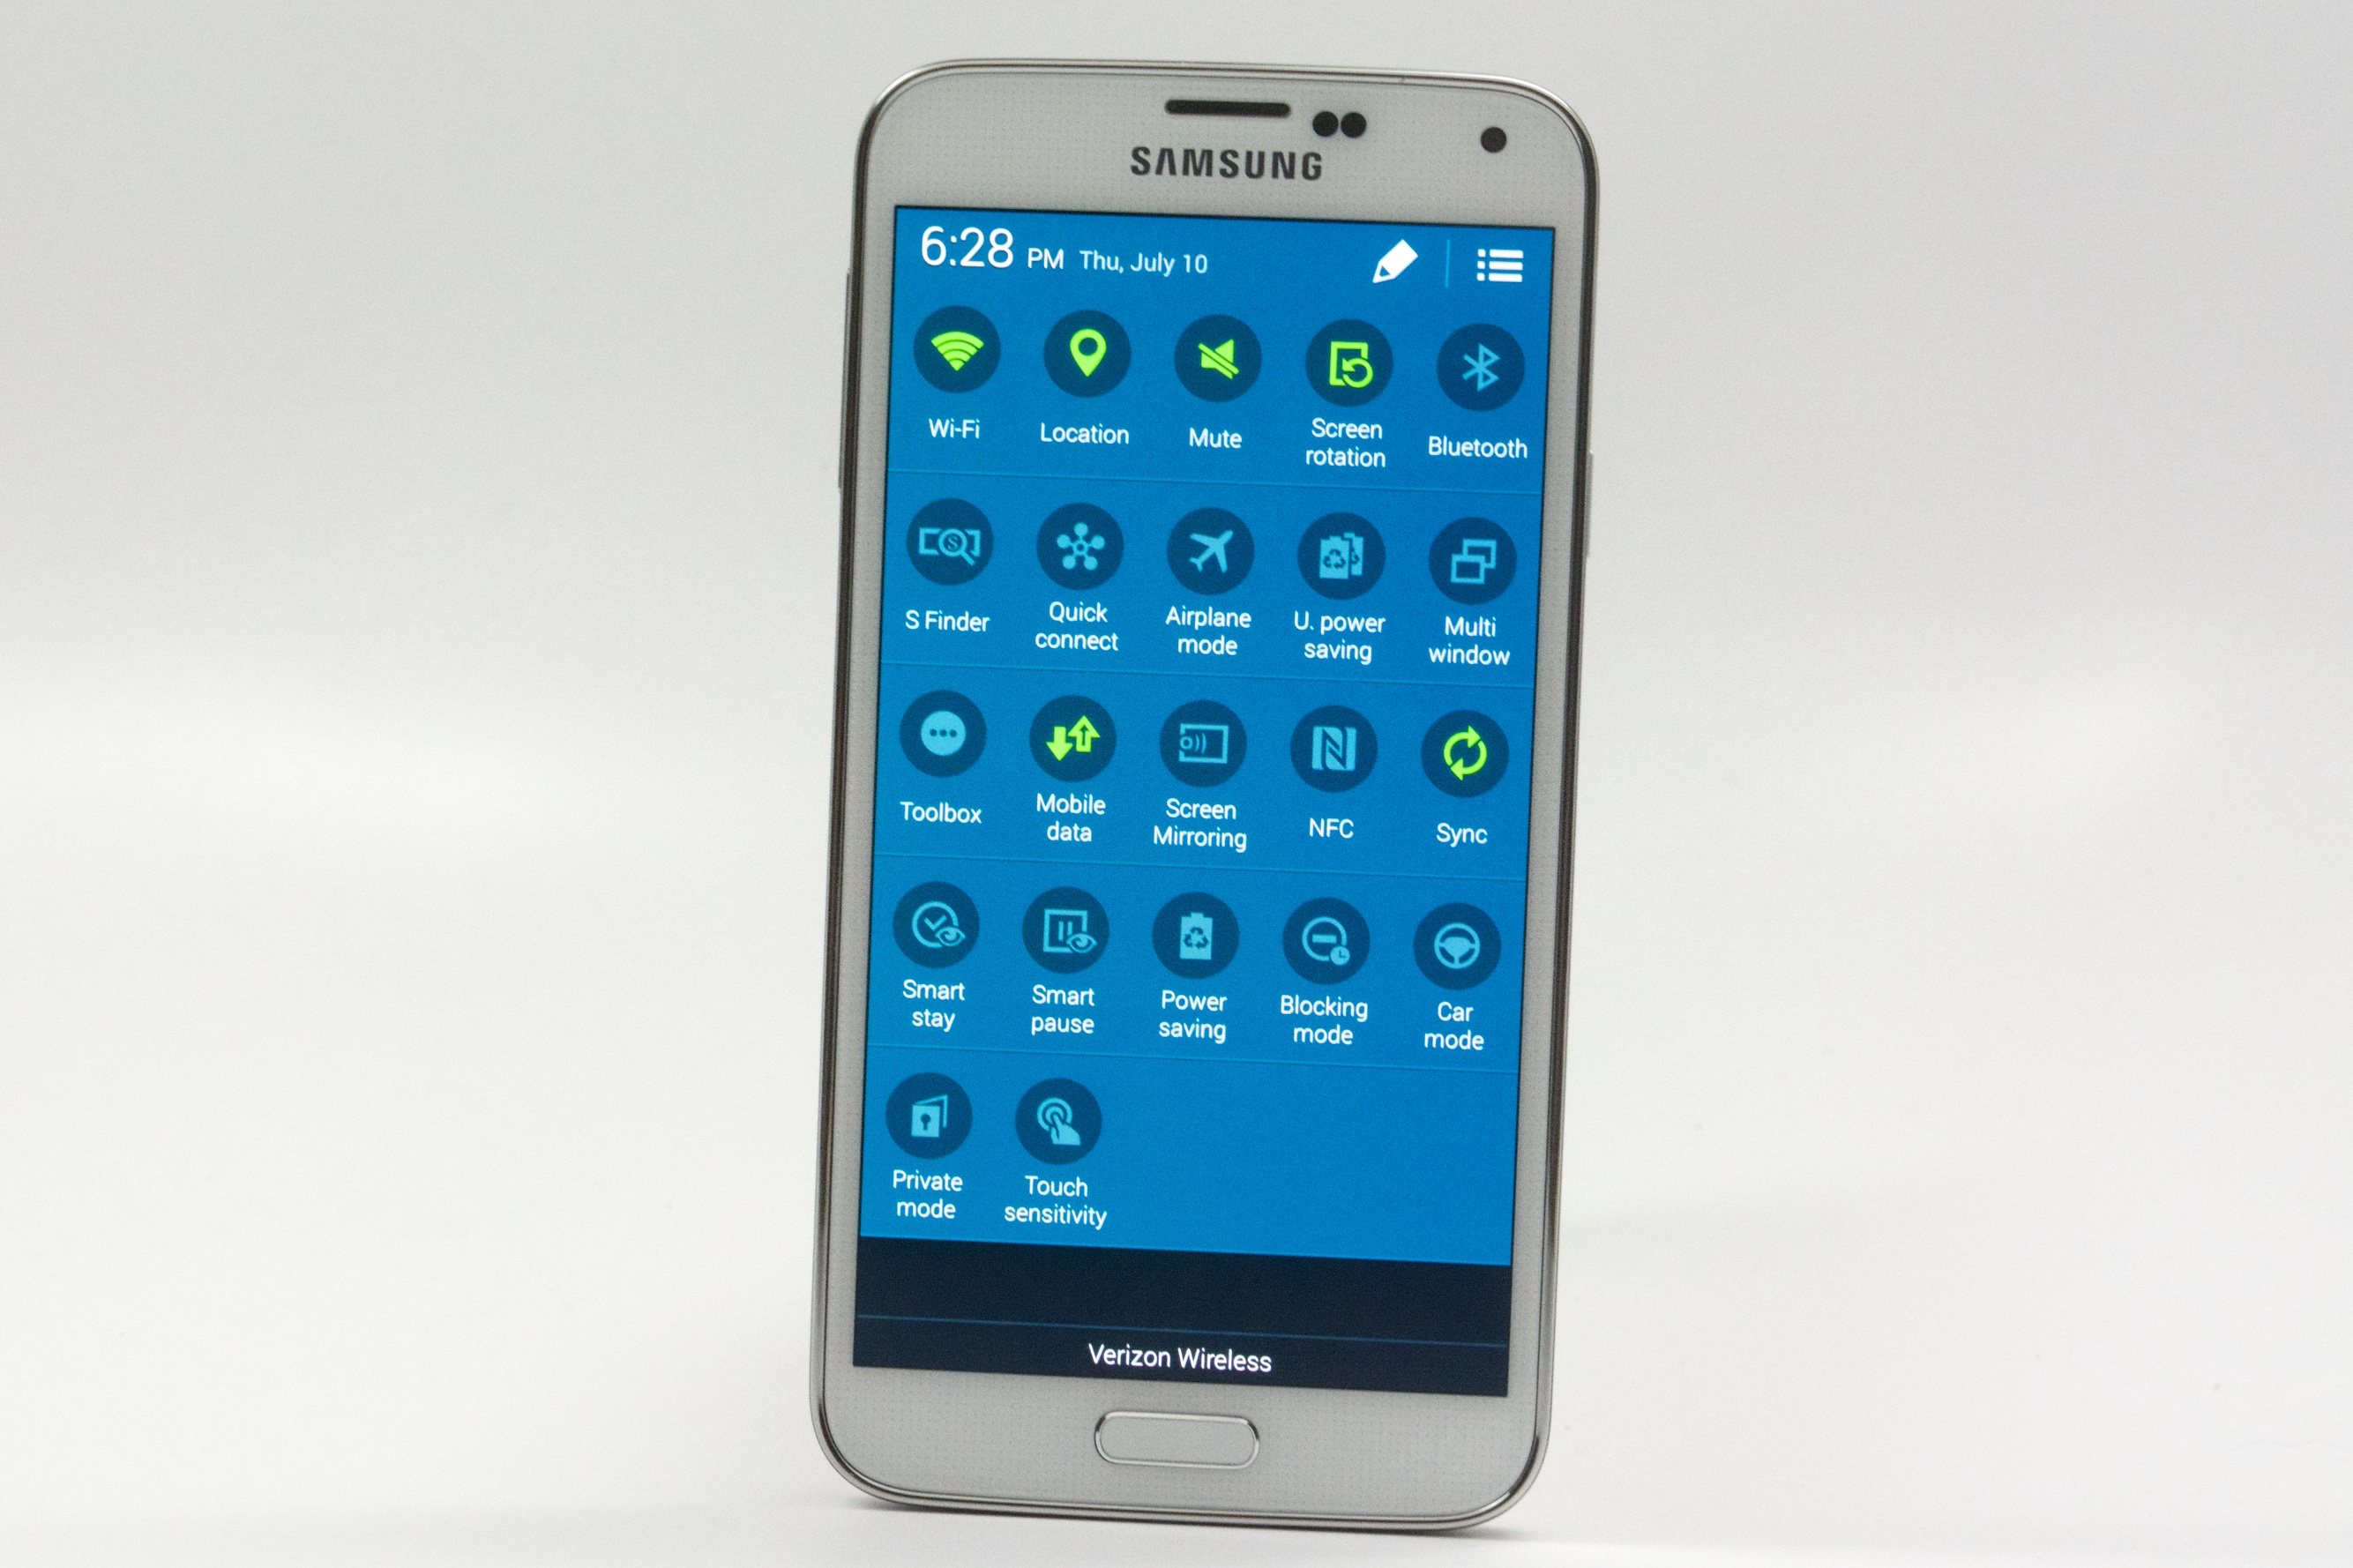 Samsung Includes Many Small Changes To Basic Android 442 Design With The Galaxy  S5